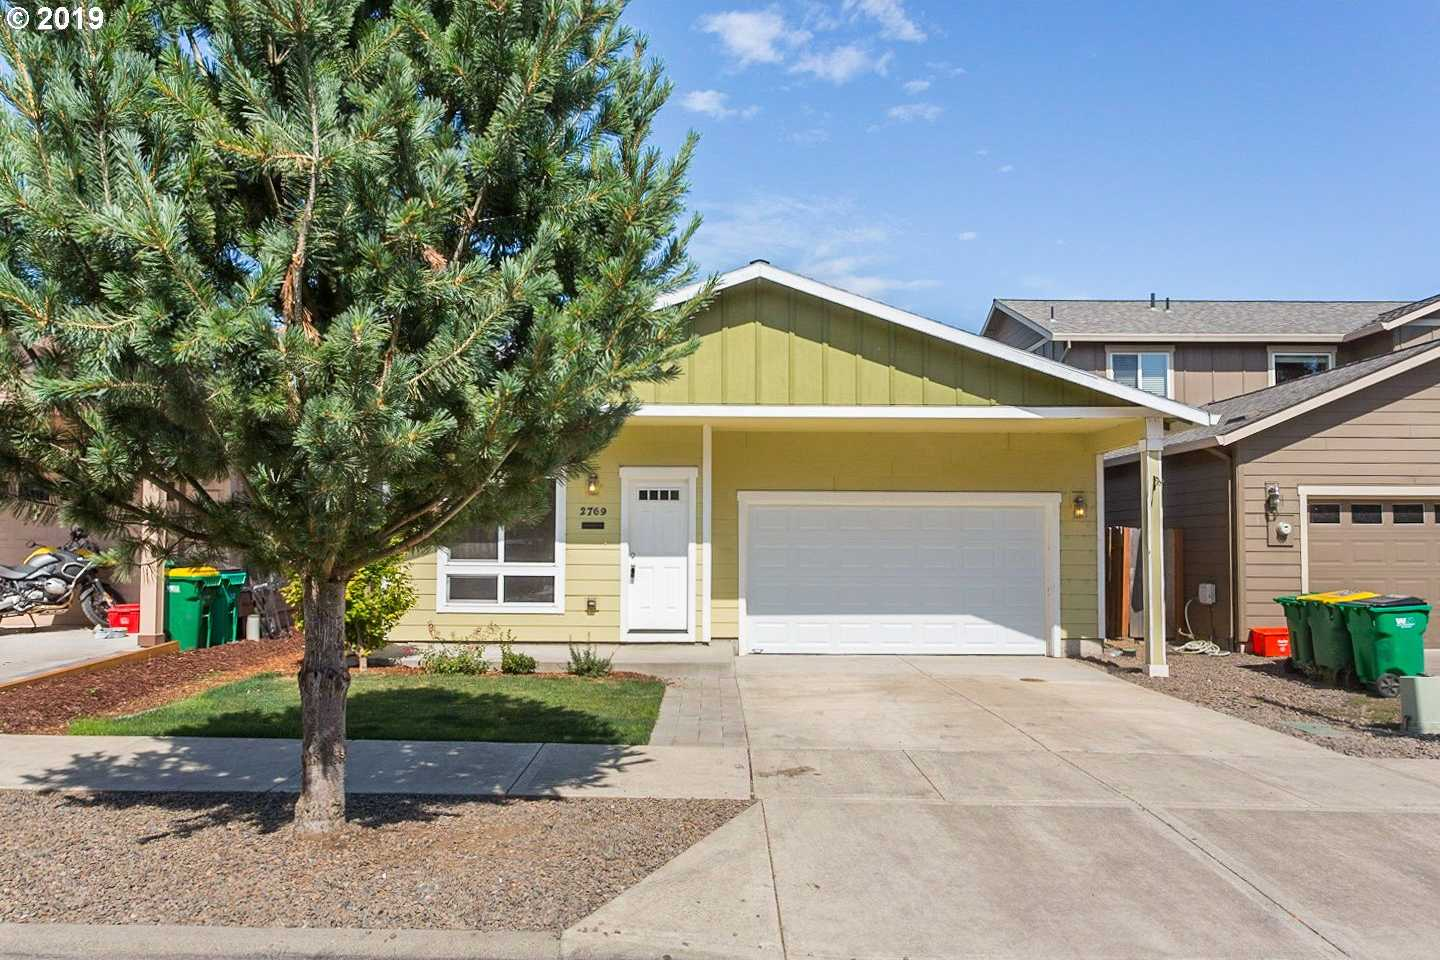 $295,000 - 2Br/2Ba -  for Sale in Forest Grove